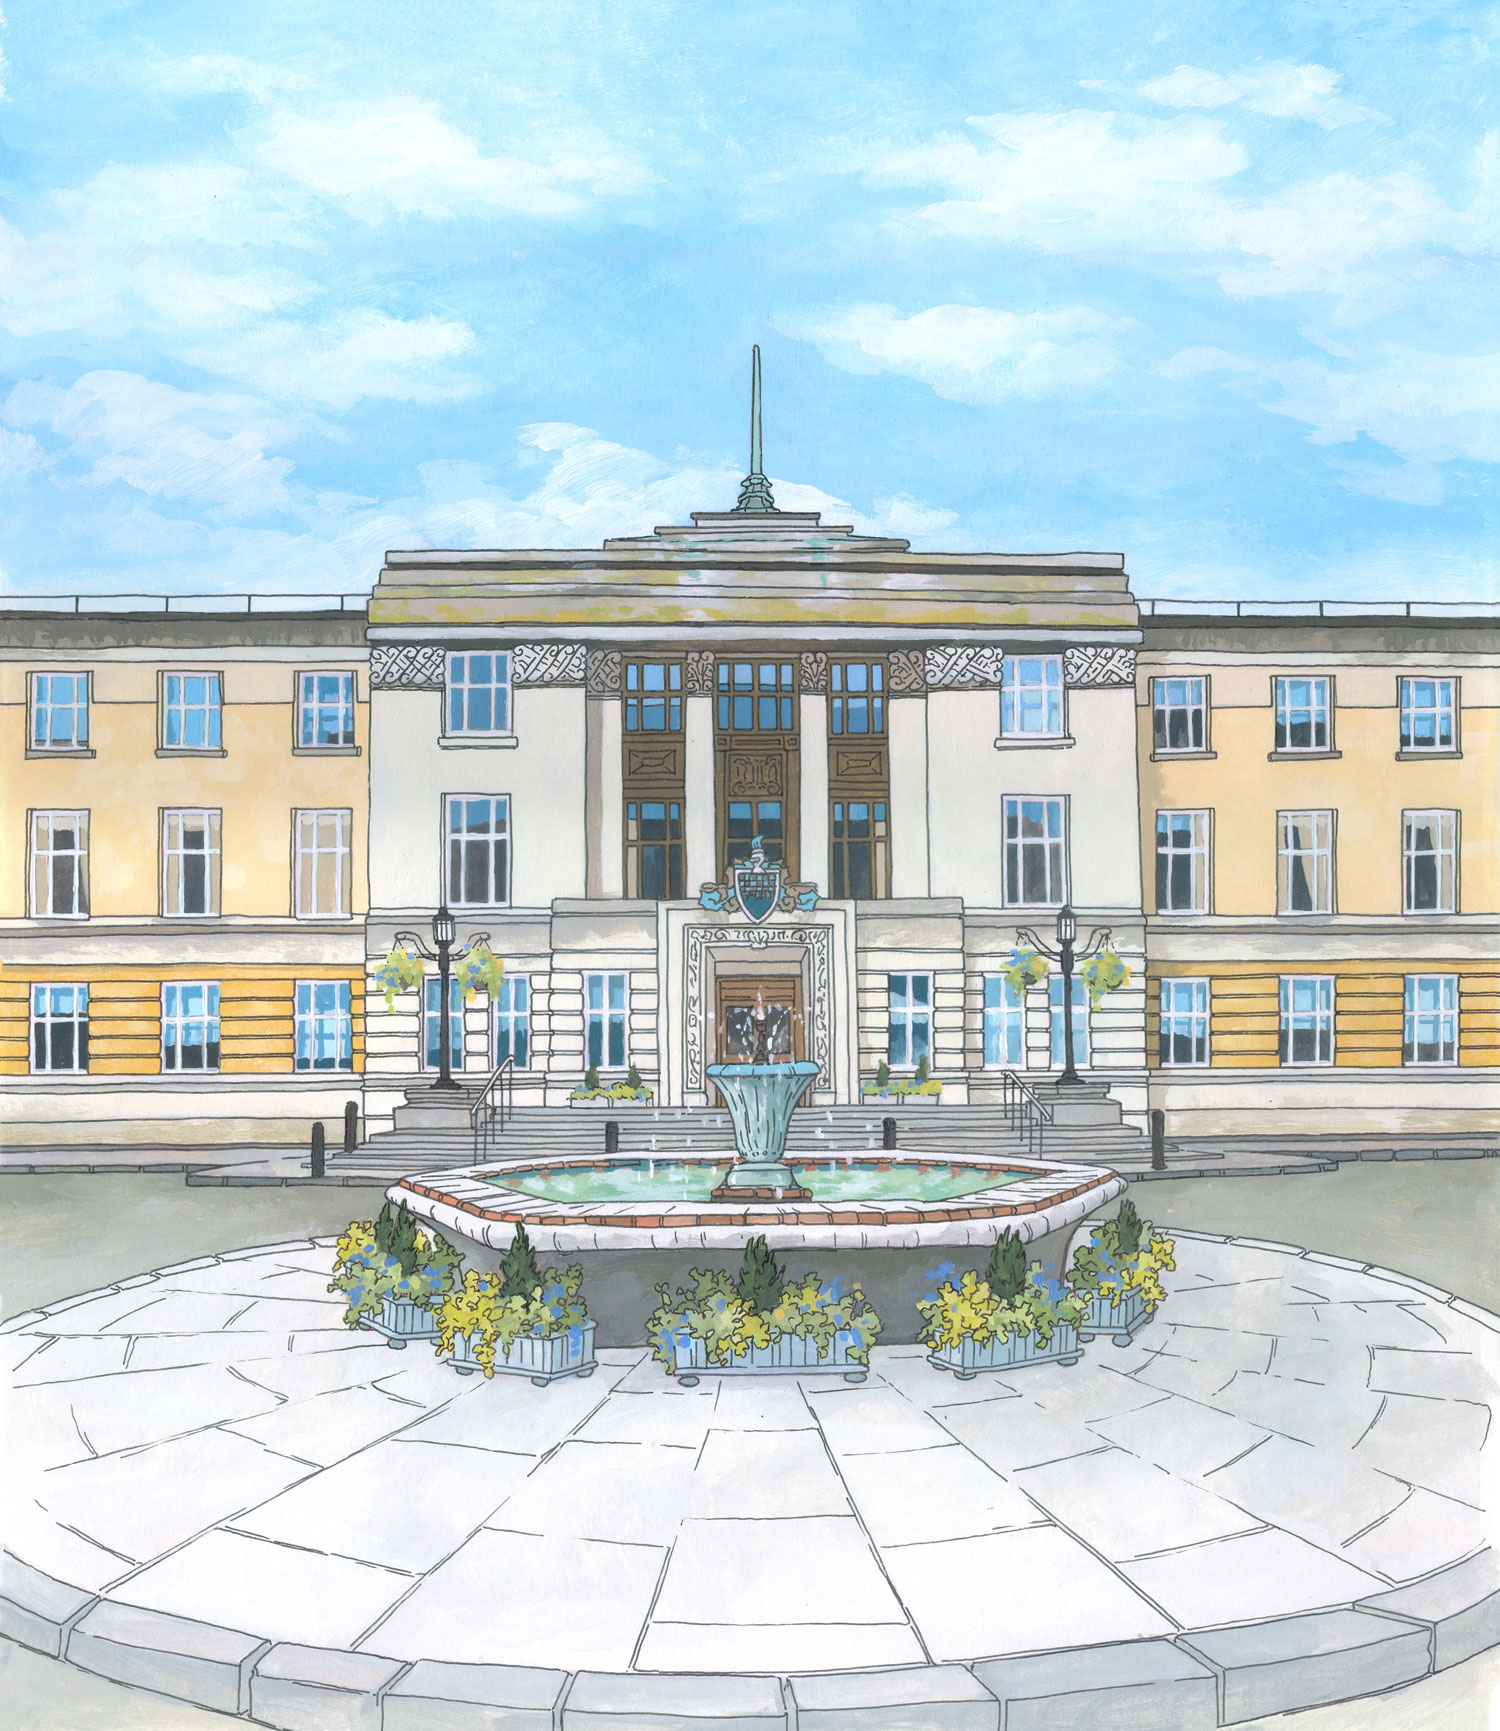 Wandsworth Town Hall Illustration by Jonathan Chapman